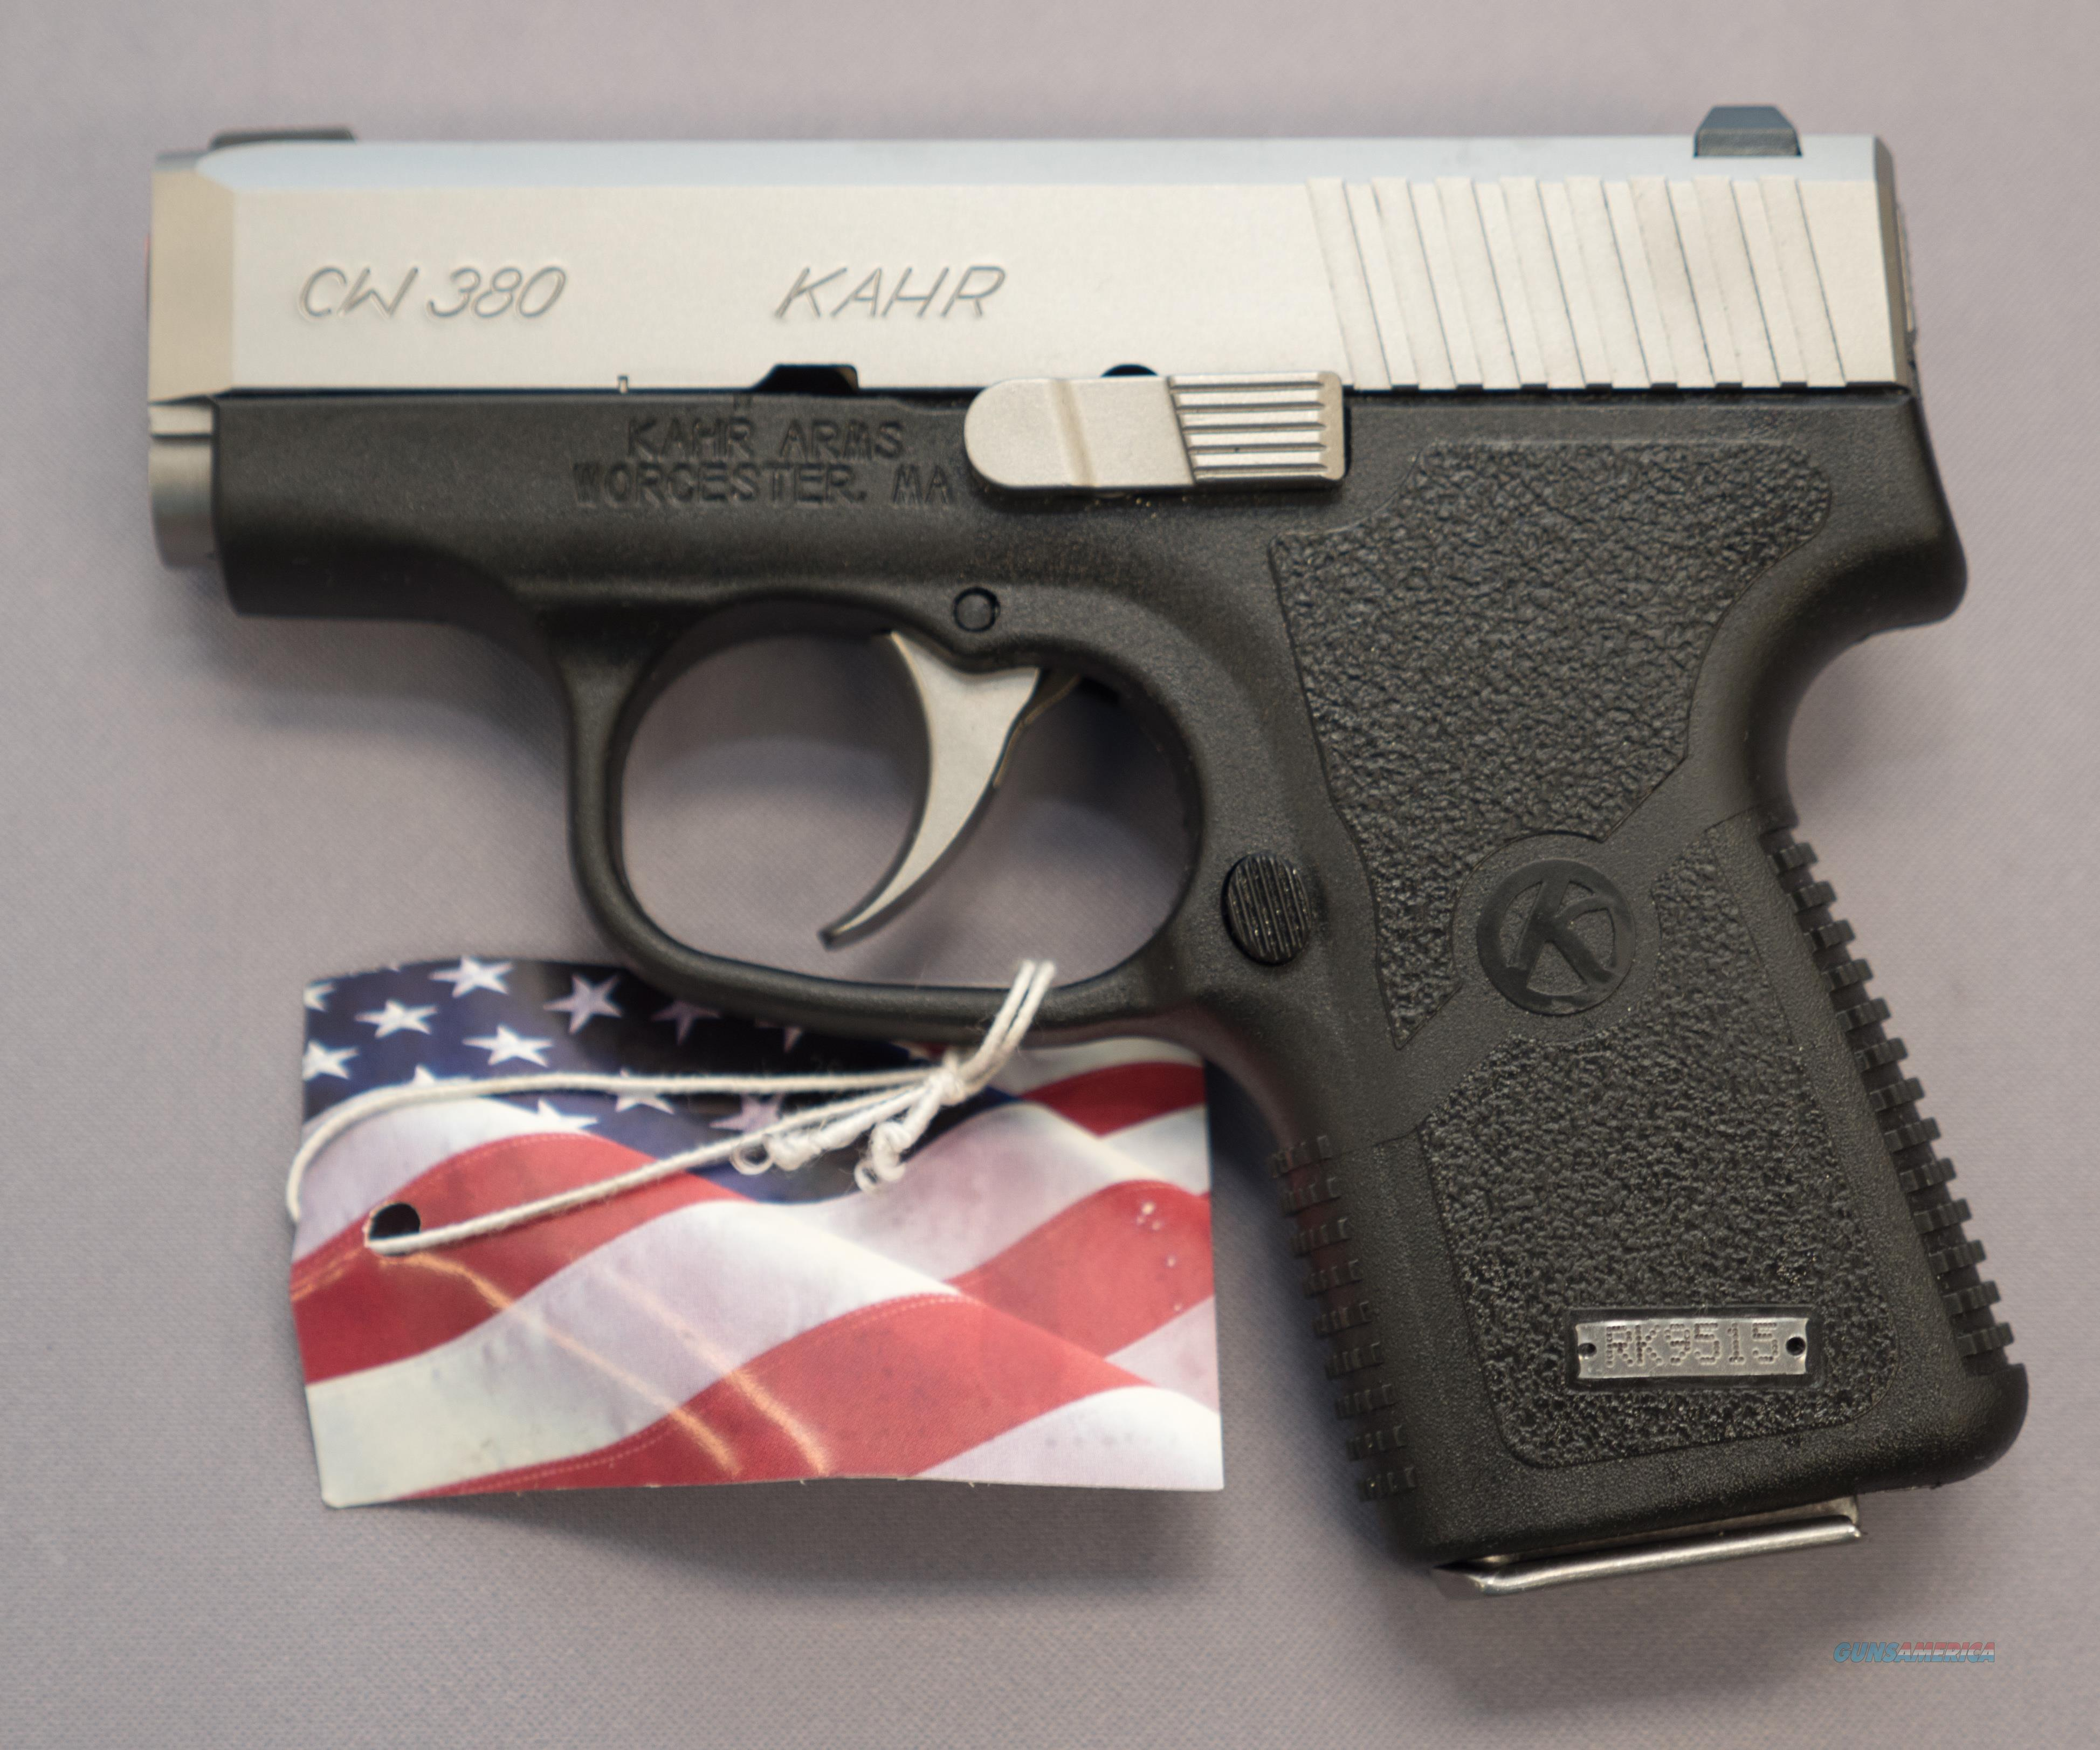 Kahr CW380 .380 ACP 6+1 Capacity No Credit Cards Fees $15 Flat rate shipping  Guns > Pistols > Kahr Pistols